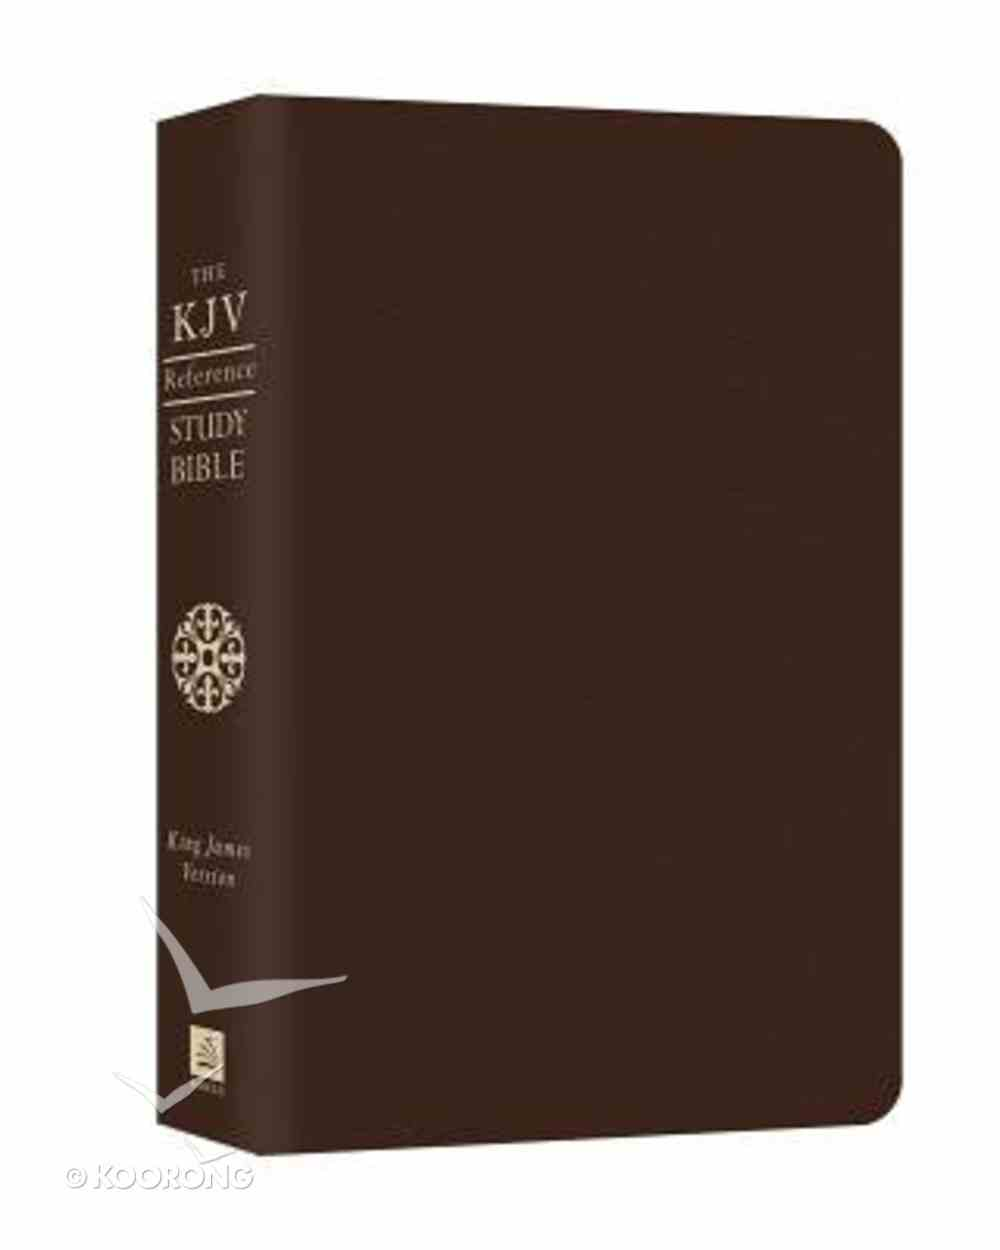 KJV Cross Reference Study Bible Brown Bonded Leather